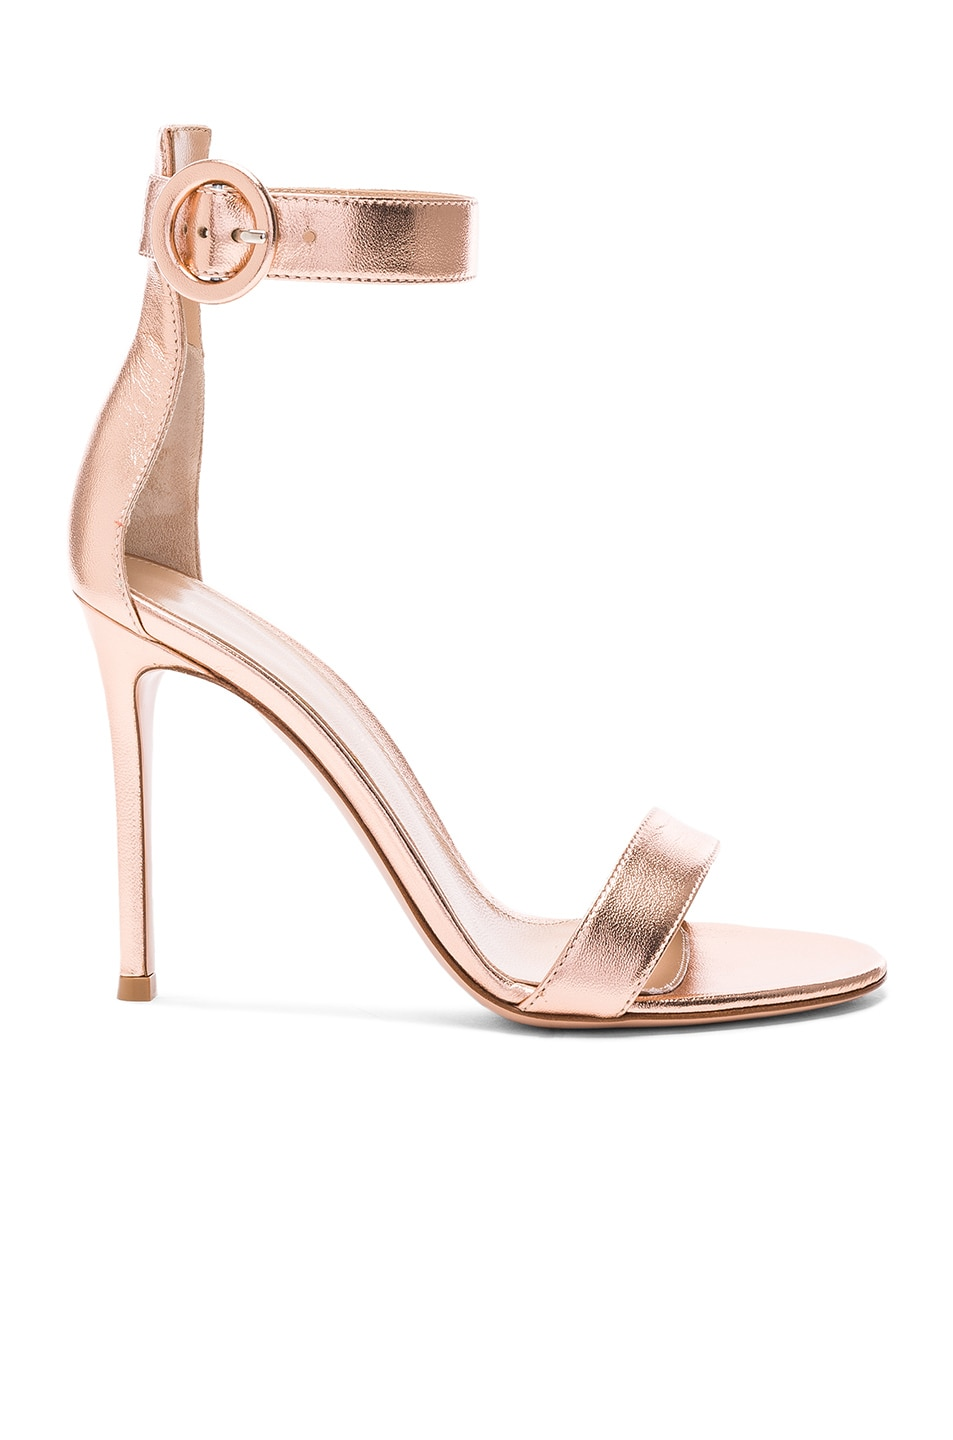 Image 1 of Gianvito Rossi Metallic Leather Ankle Strap Heels in Praline